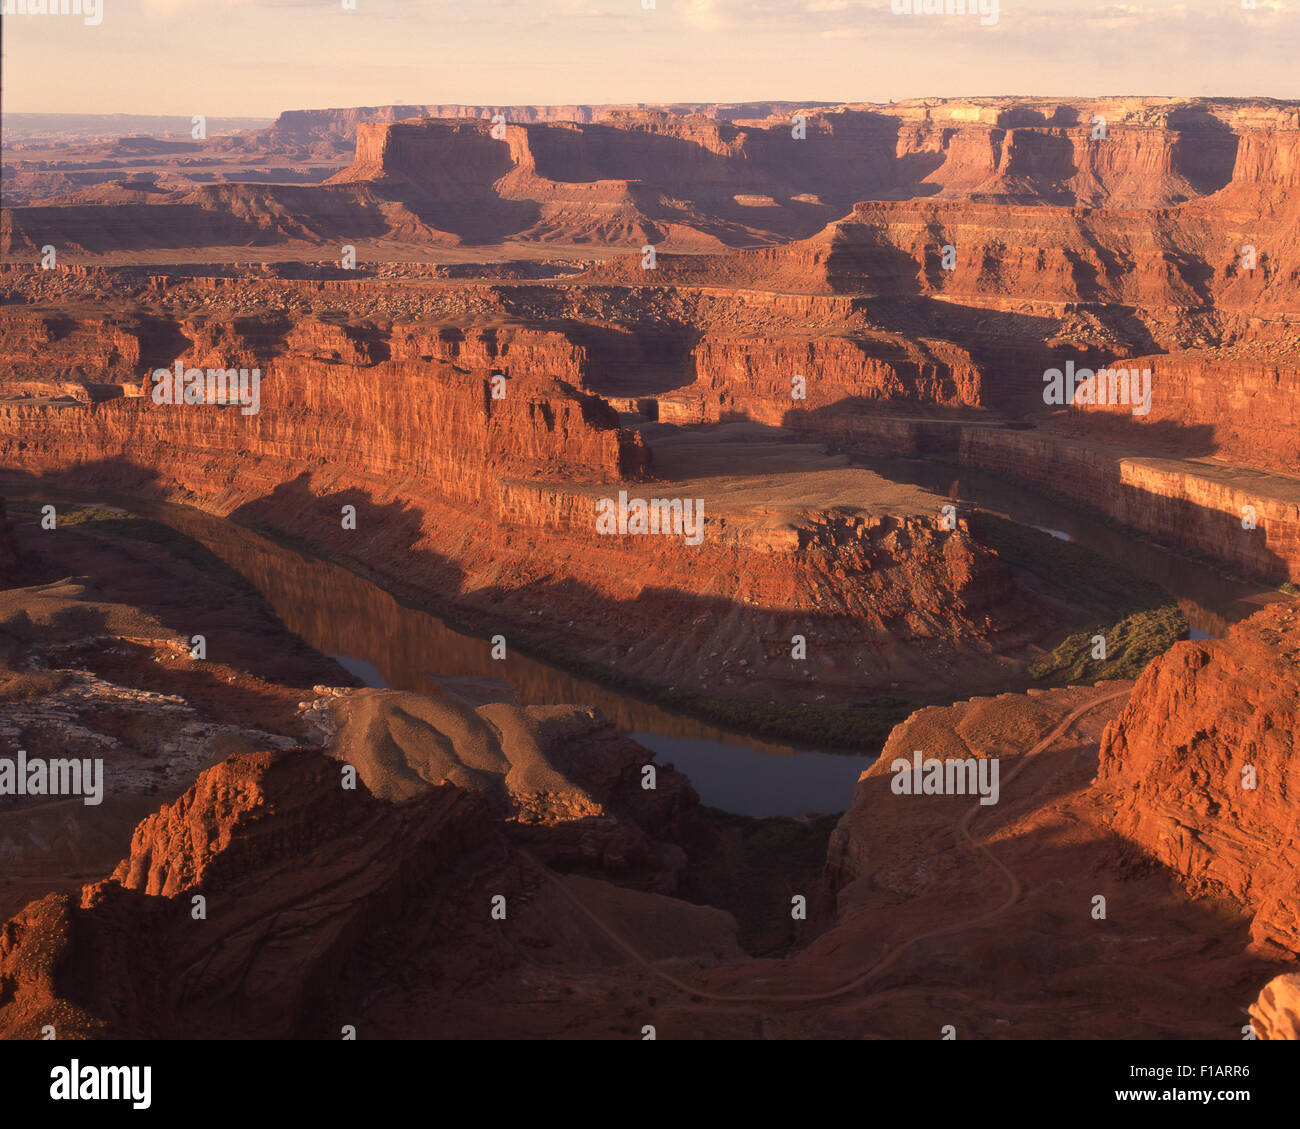 Dead Horse Point State Park Foto Stock